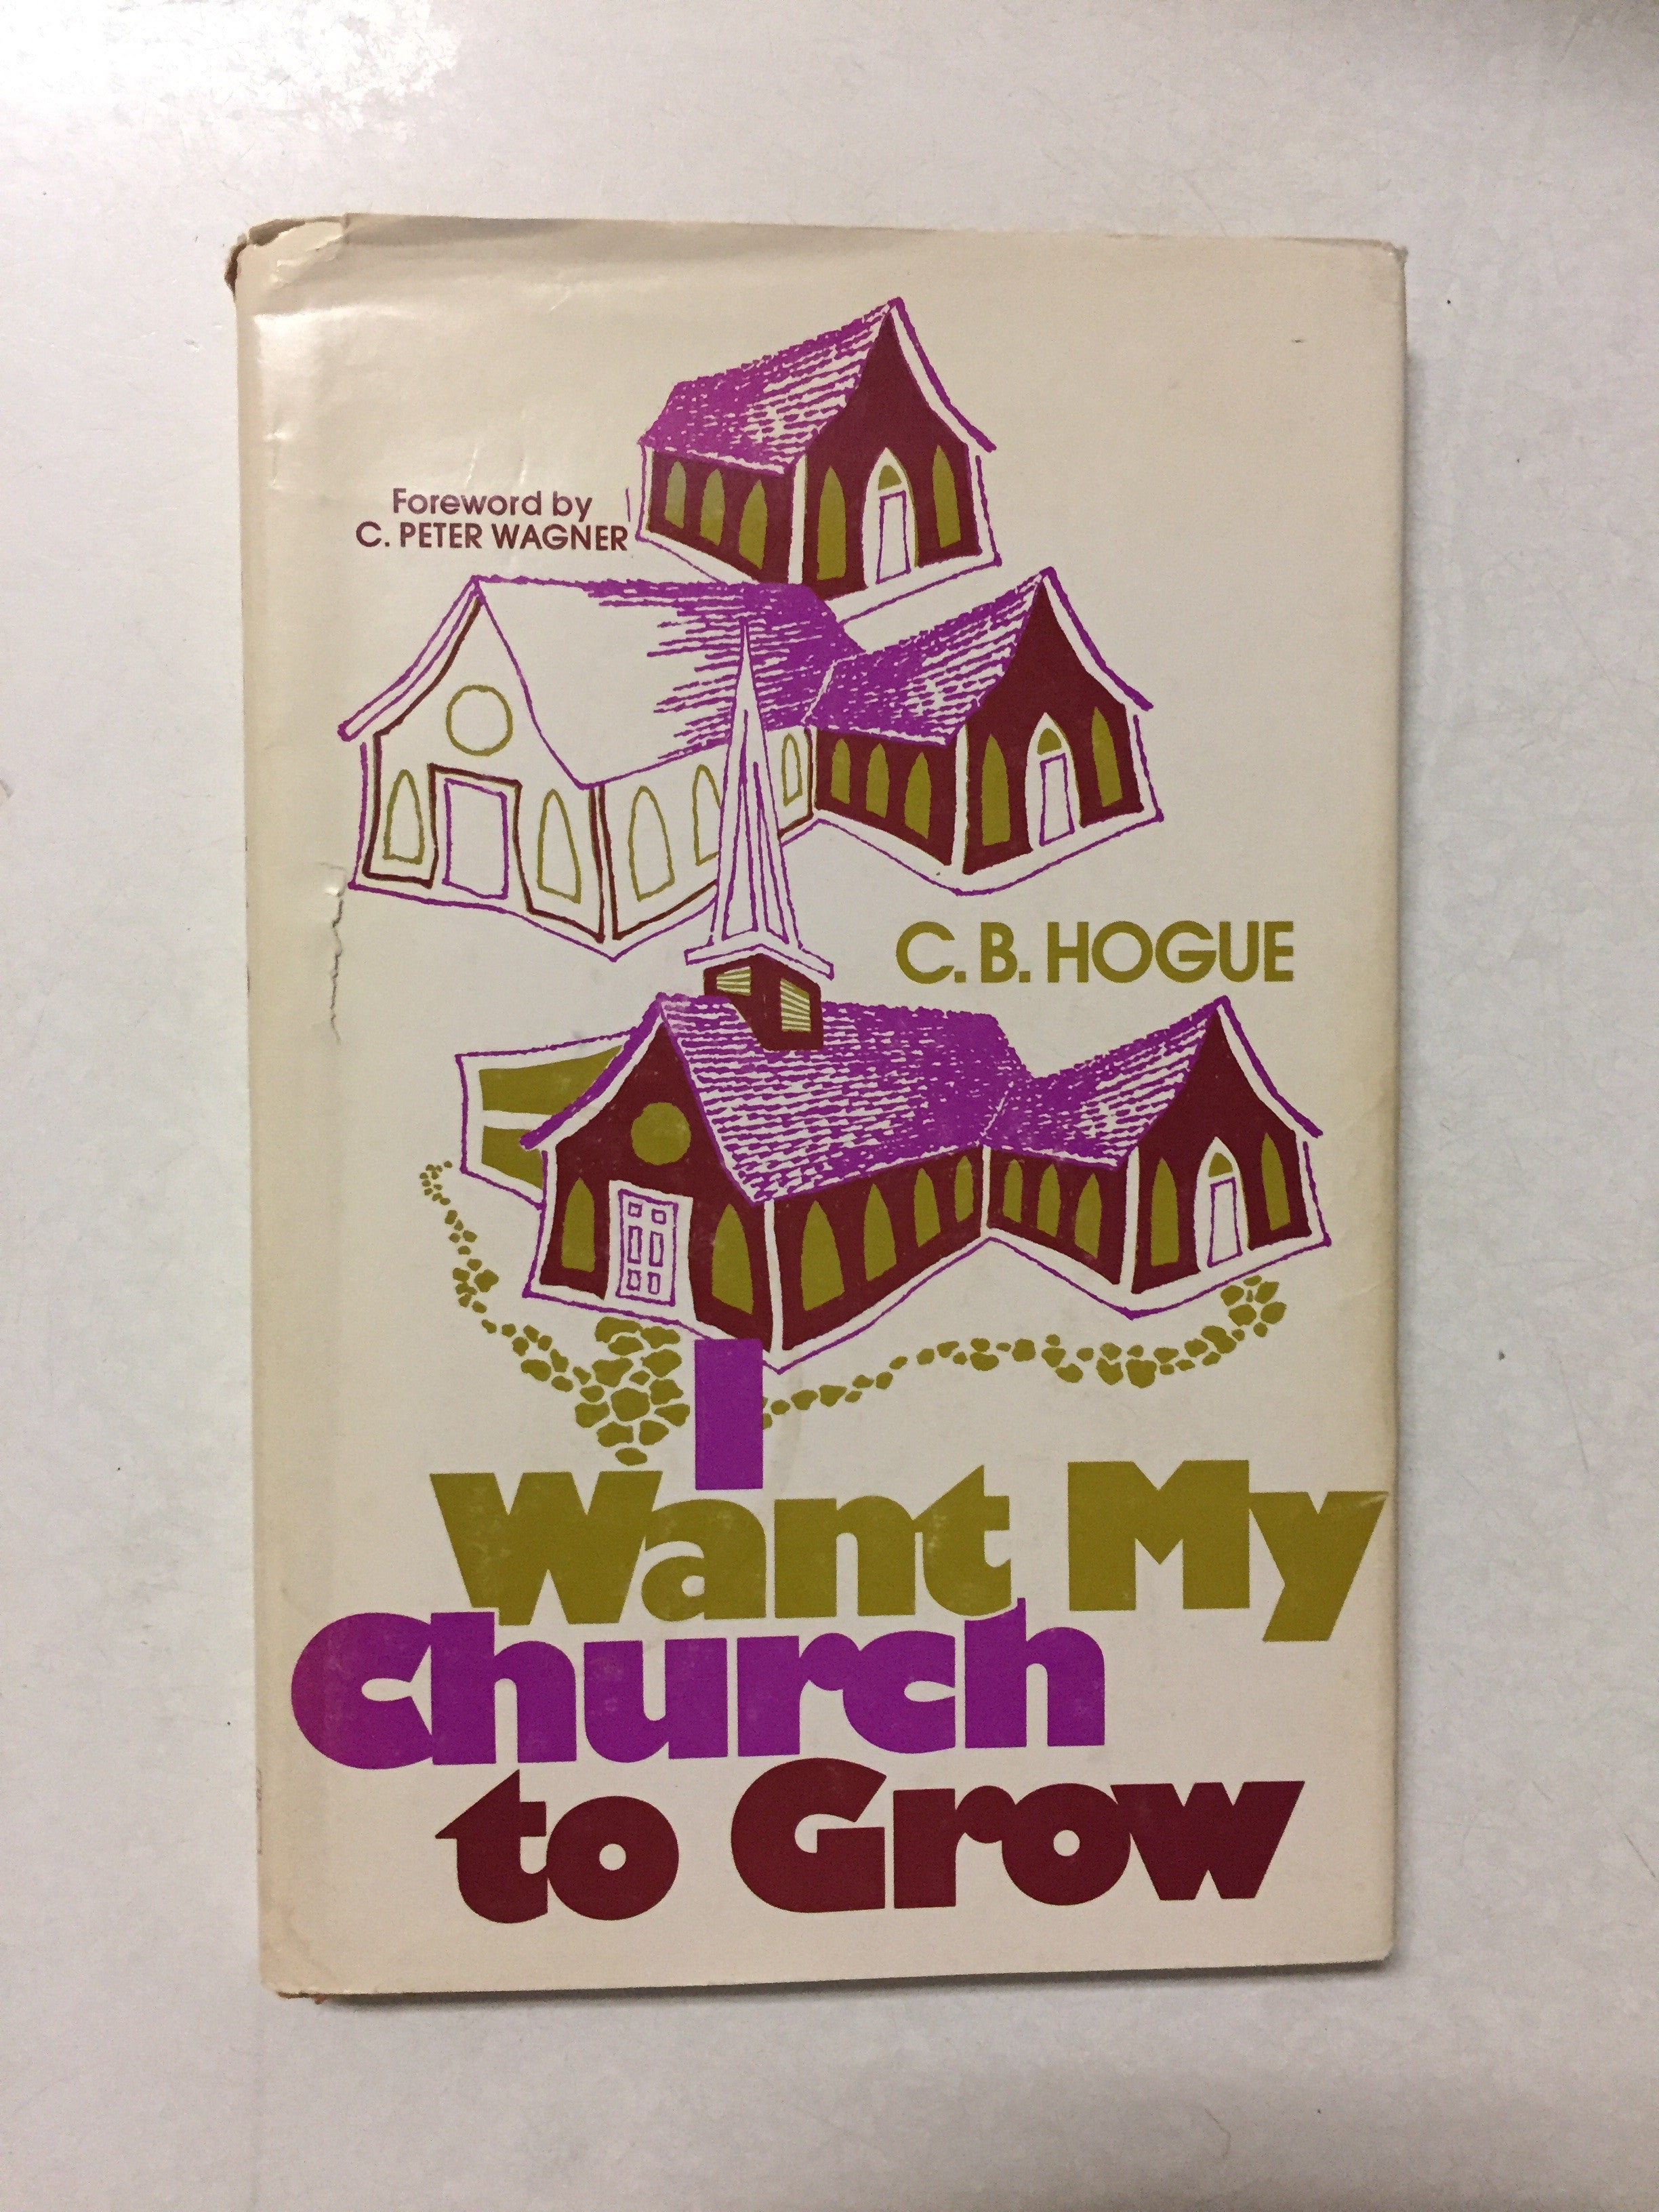 I Want My Church to Grow - Slickcatbooks